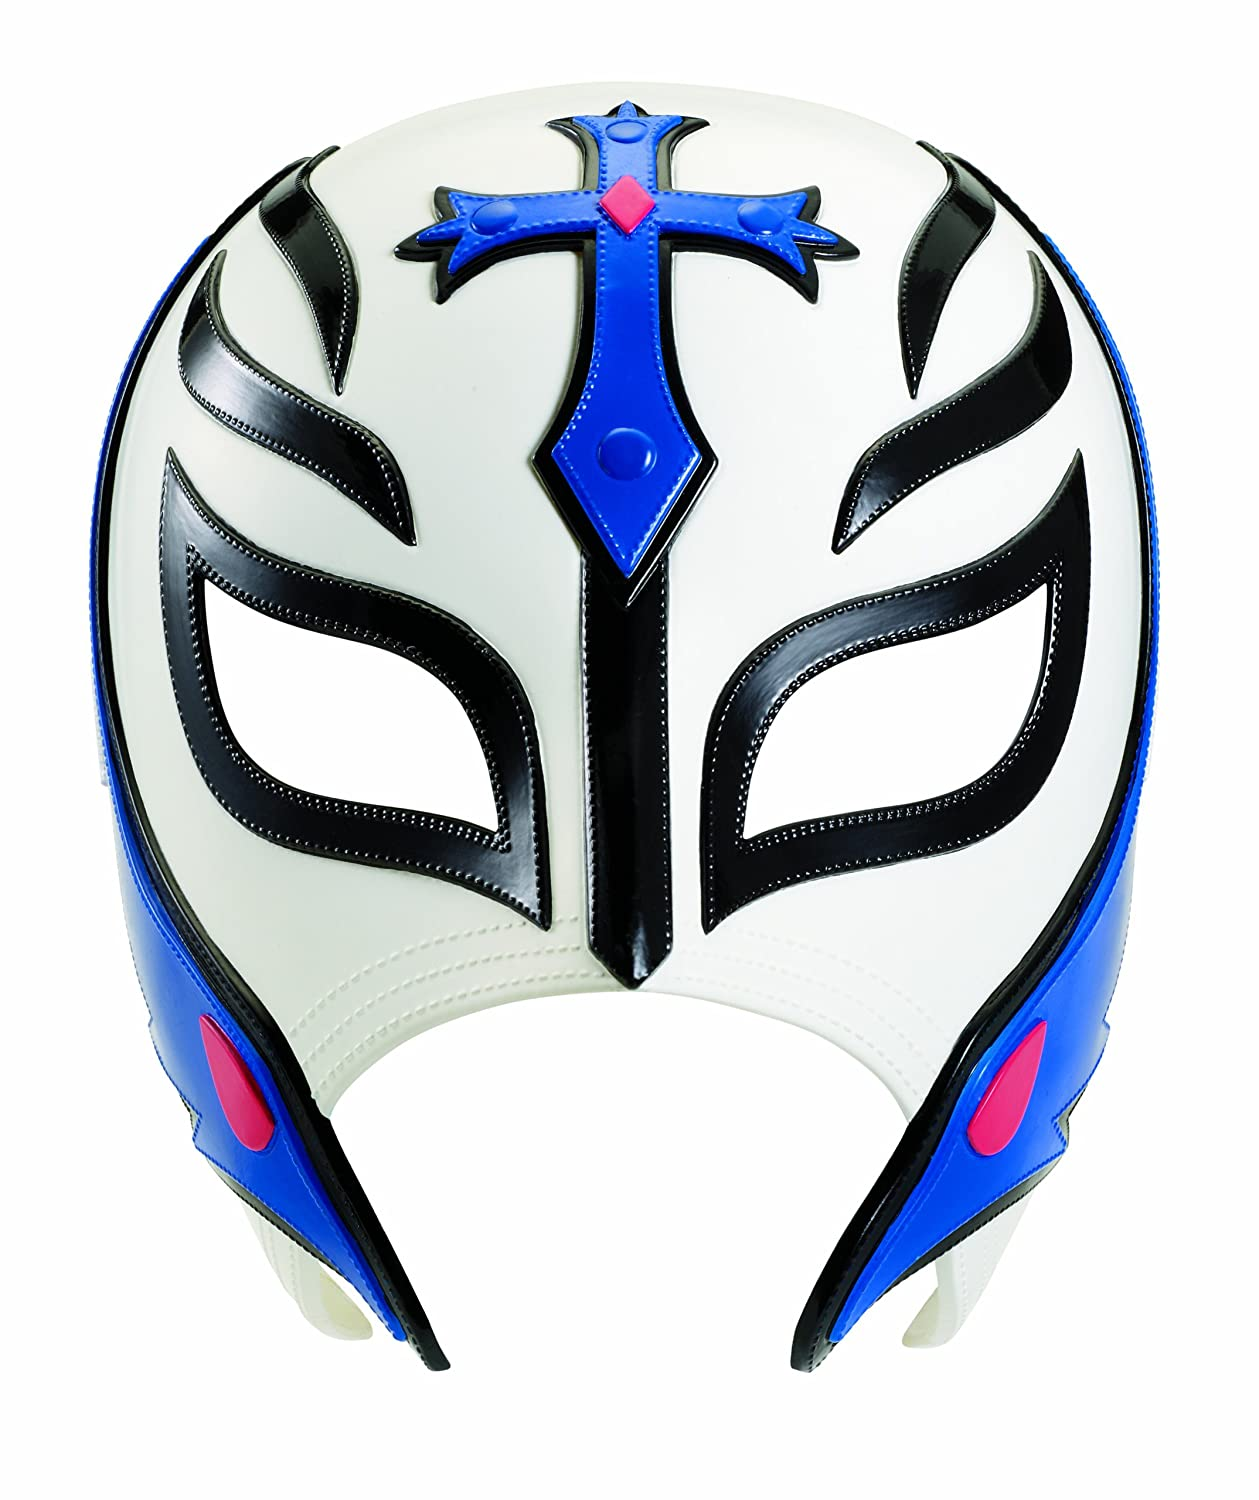 Wwe coloring pages of rey mysterio mask rey mysterio coloring pages - Wwe Coloring Pages Of Rey Mysterio Mask Rey Mysterio Coloring Pages 17